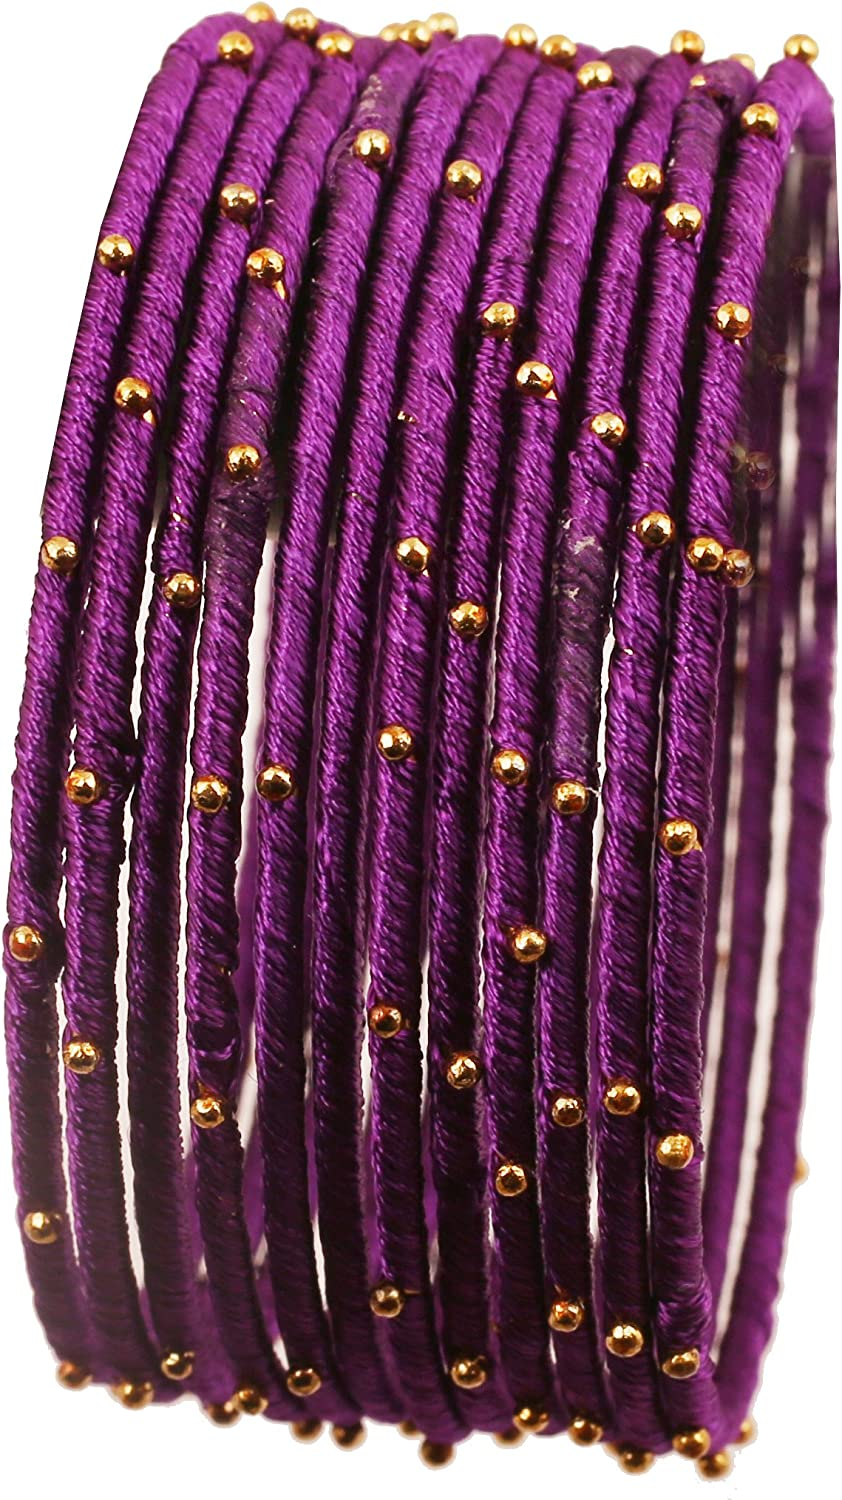 Touchstone Indian Bollywood Mystical Look Hand Woven Faux Silk Thread Golden Balls Gorgeous Color Exotic Designer Jewelry Bangle Bracelets for Women.